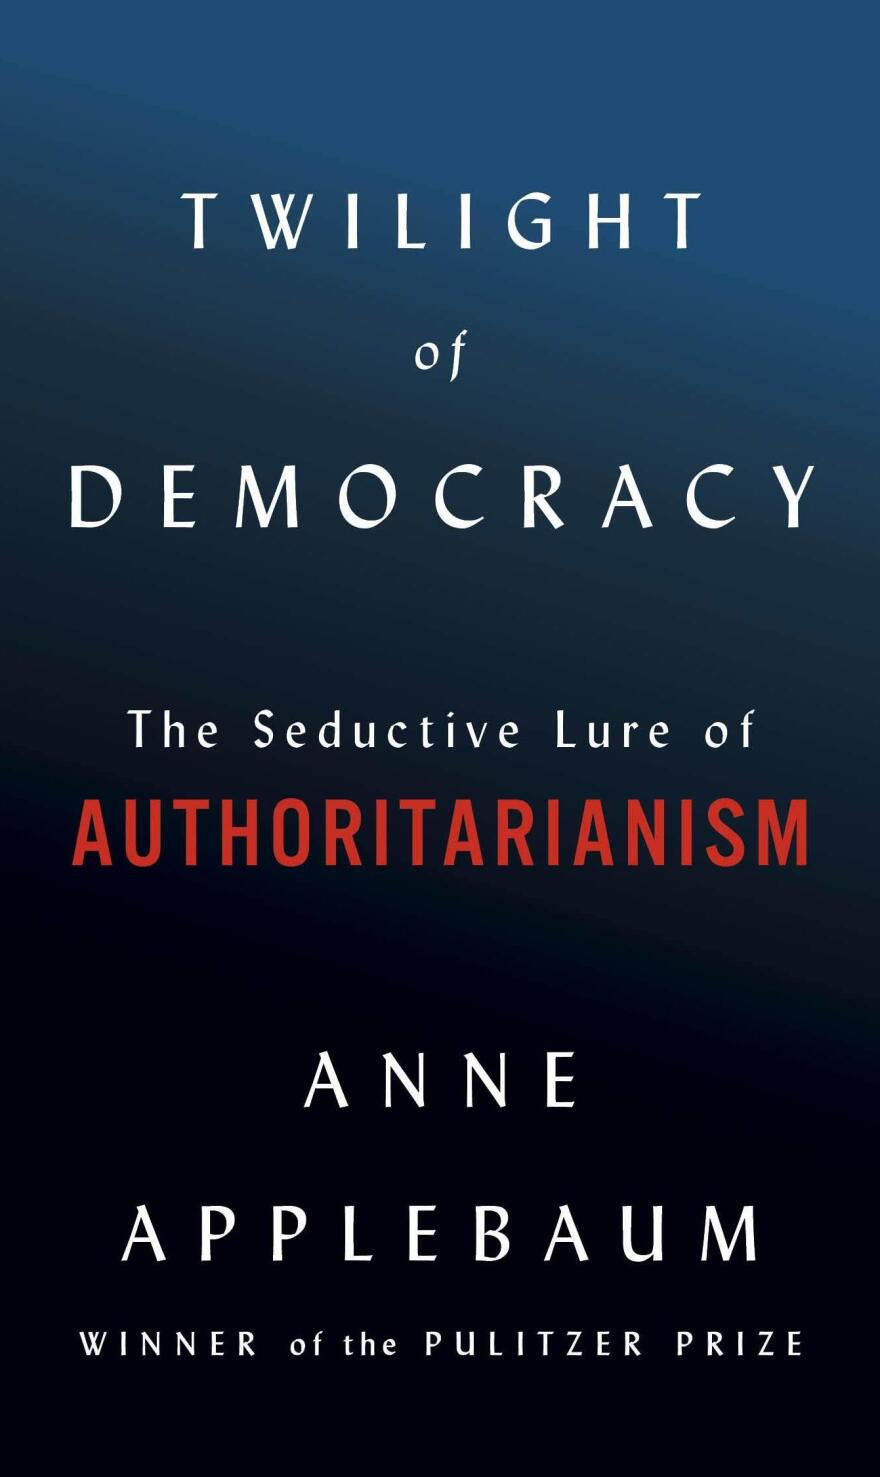 <em>Twilight of Democracy: The Seductive Lure of Authoritarianism</em> by Anne Applebaum